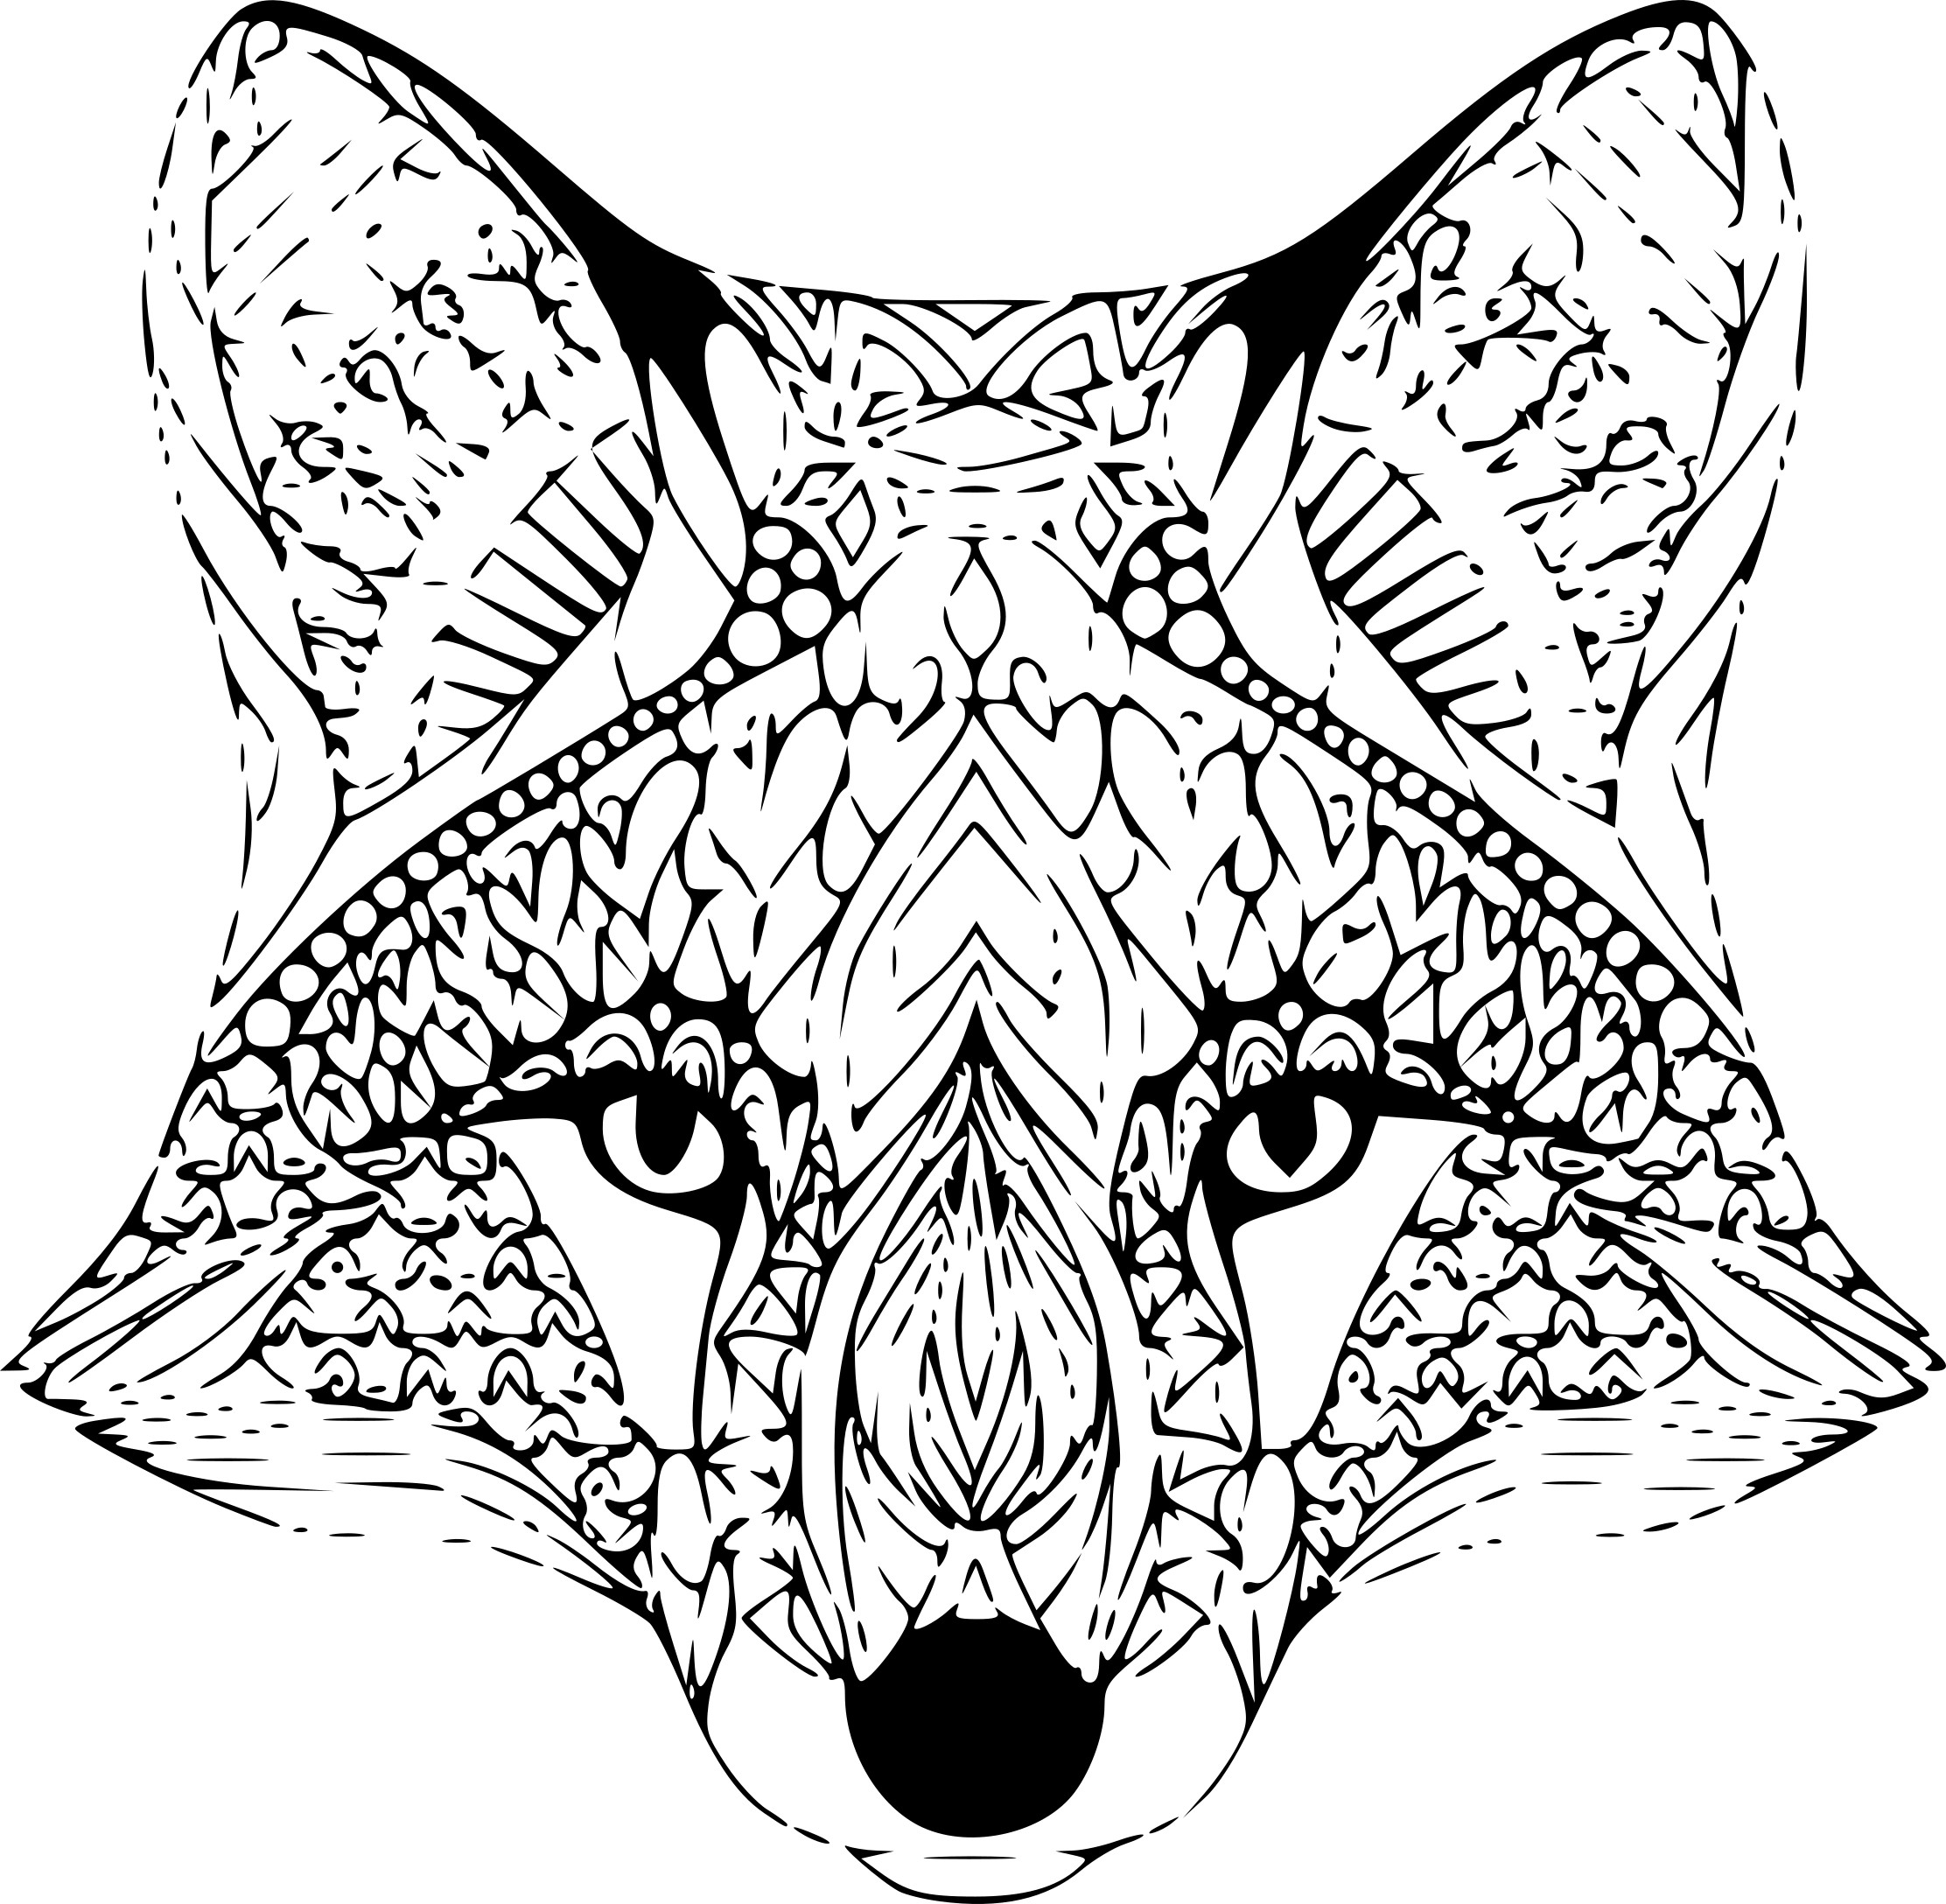 Coloriage anti-stress renard